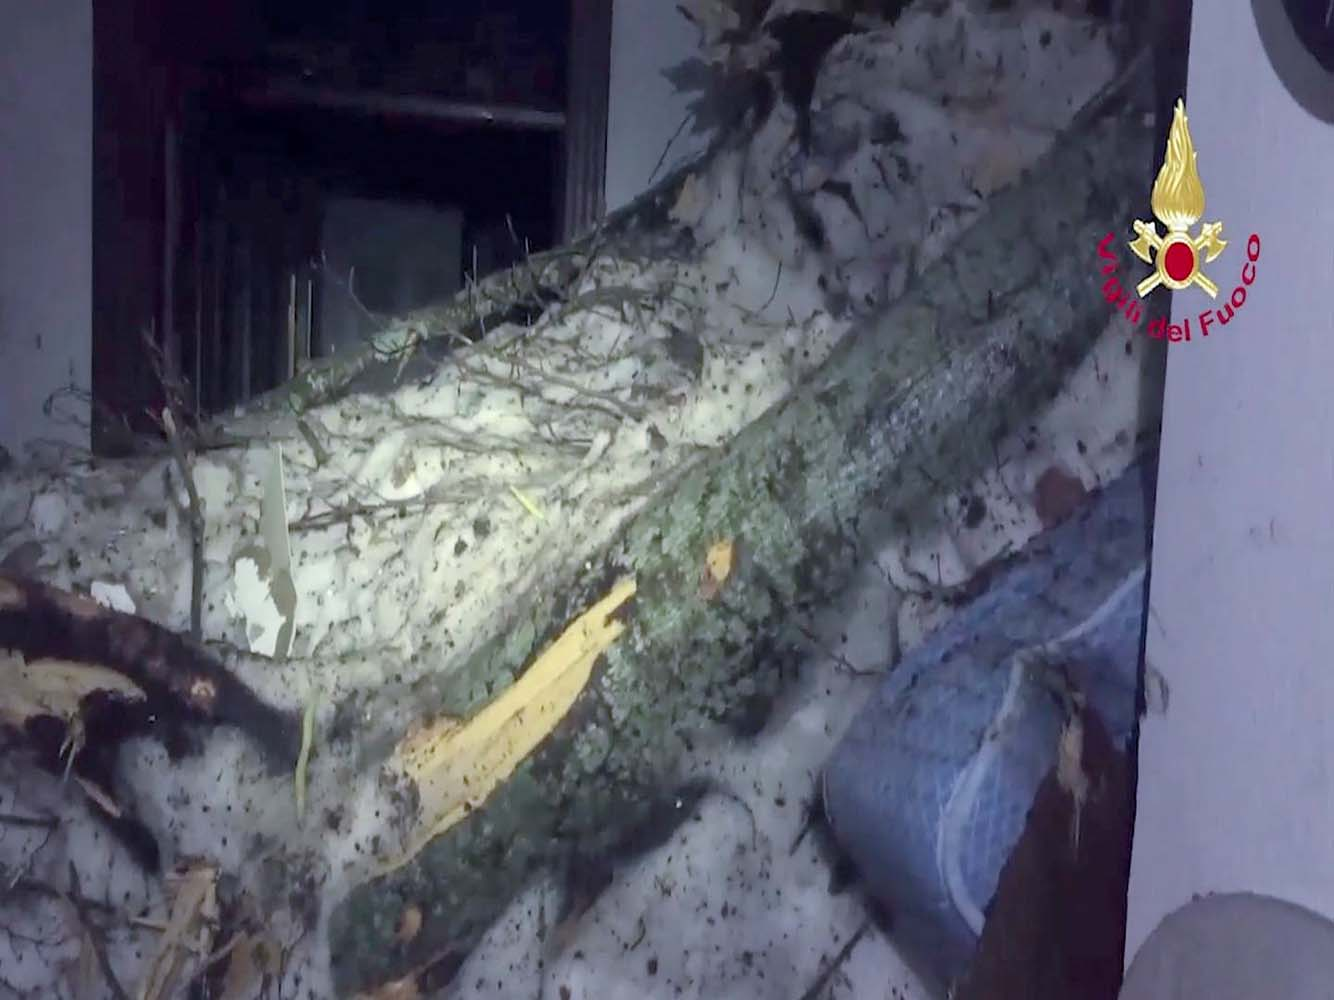 A still image taken from a video shows the snow inside the Hotel Rigopiano, central Italy, after it was hit by an avalanche, January 20, 2017 provided by Italy's Fire Fighters. Vigili del Fuoco/Handout via REUTERS ATTENTION EDITORS - THIS IMAGE WAS PROVIDED BY A THIRD PARTY. EDITORIAL USE ONLY.